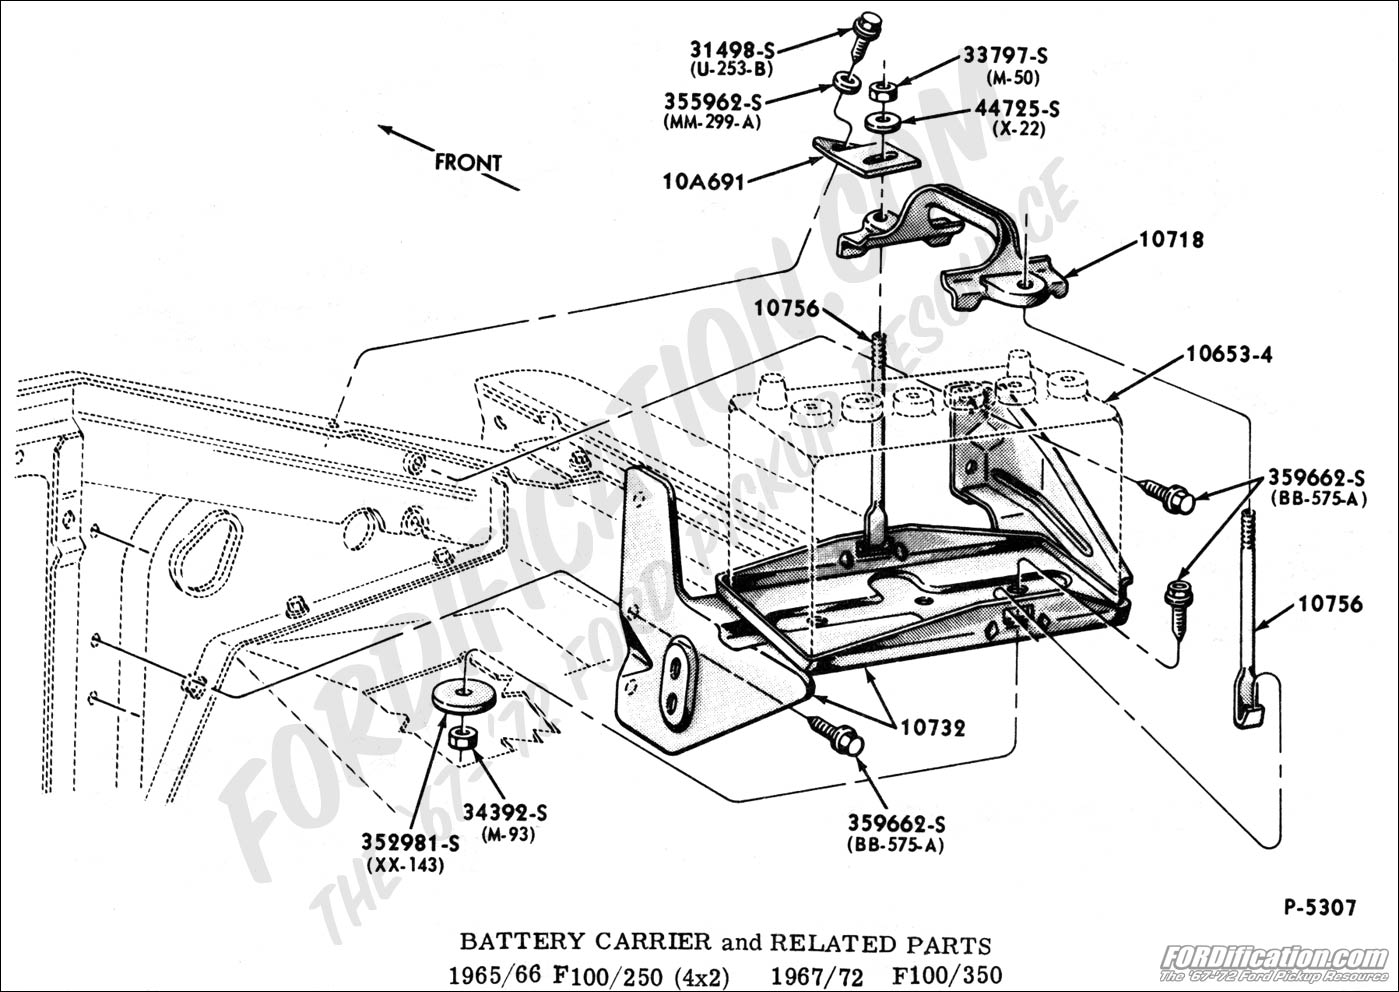 dash panel wiring and related parts typical dash panel wiring and